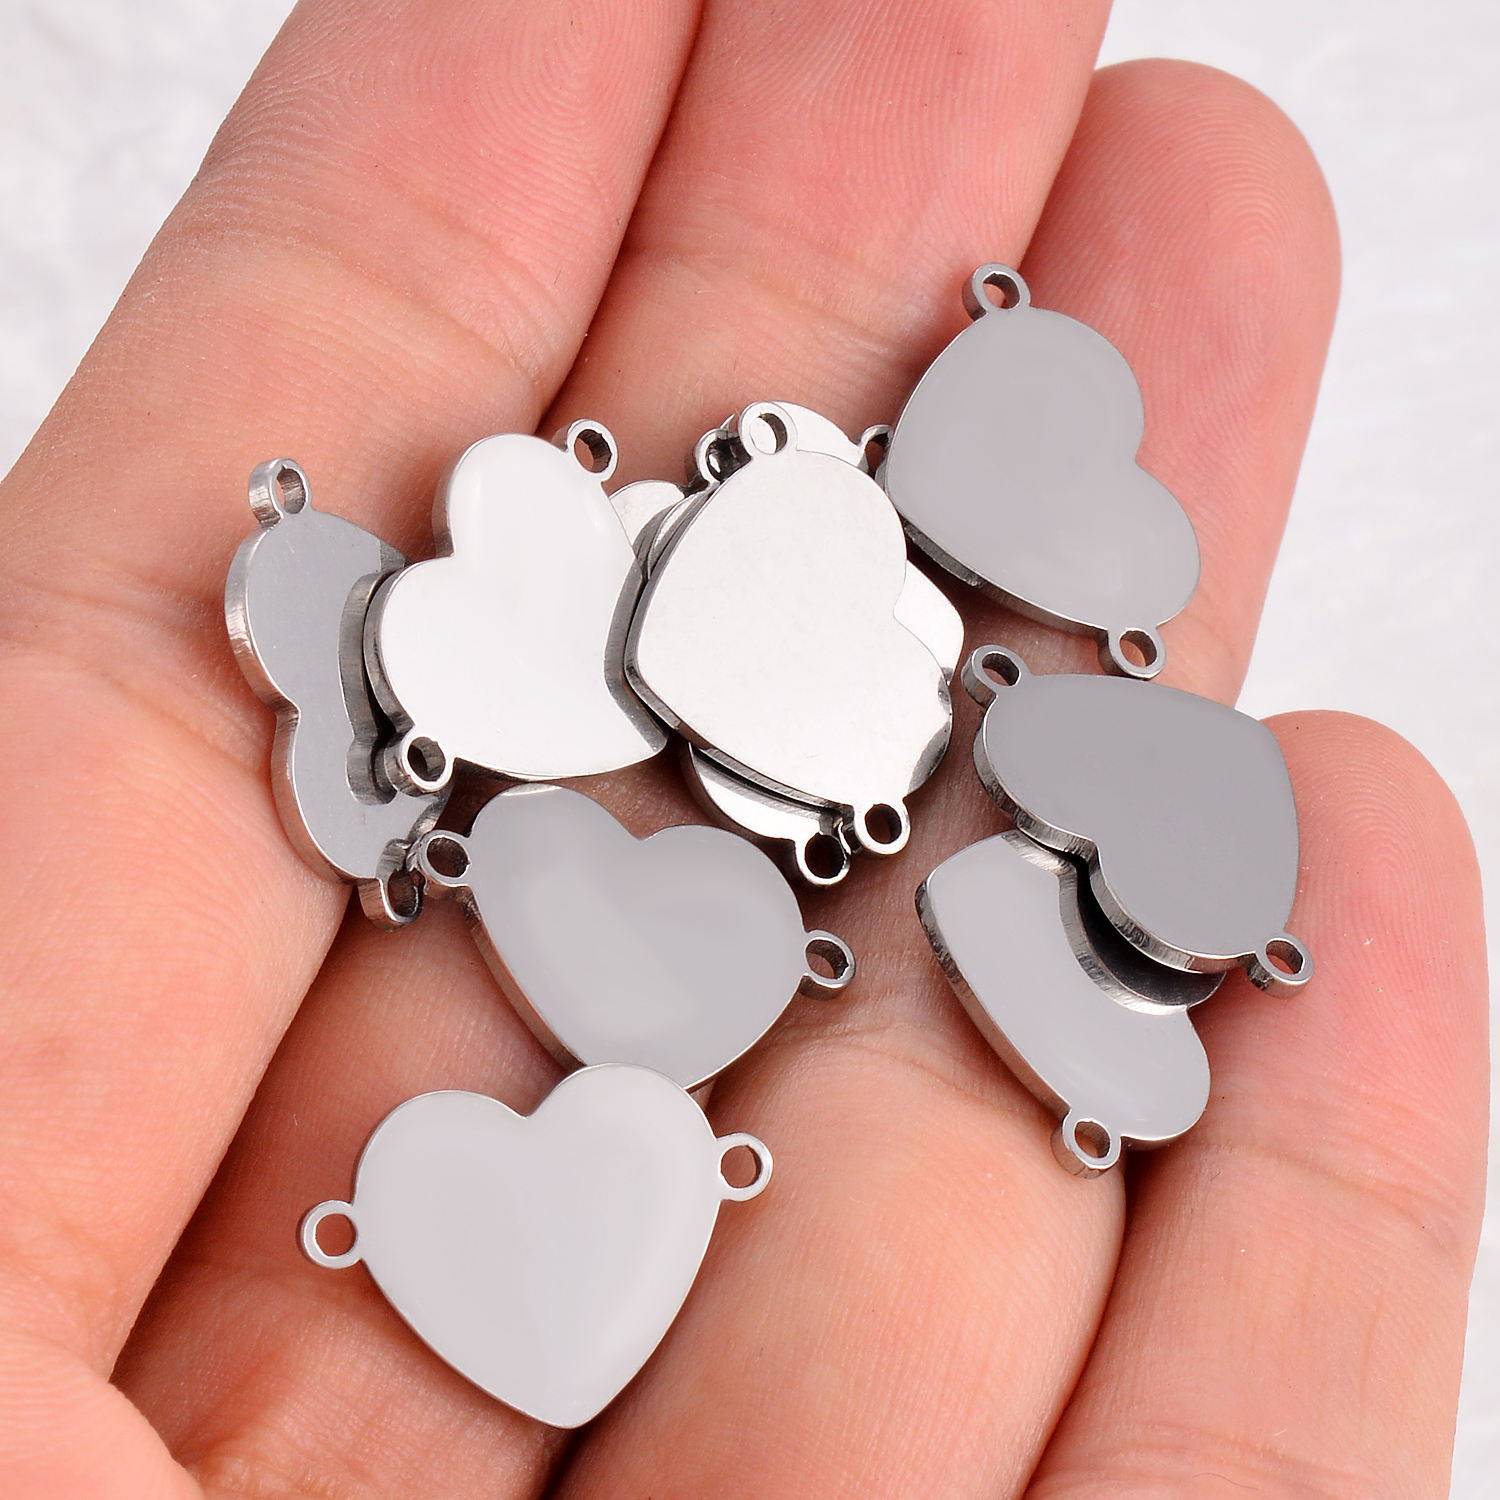 10 Pcs Stainless Steel Small Heart Bracelet Charms DIY Jewelry Findings Bangle Connector Accessory 2 Holes DIY Charm